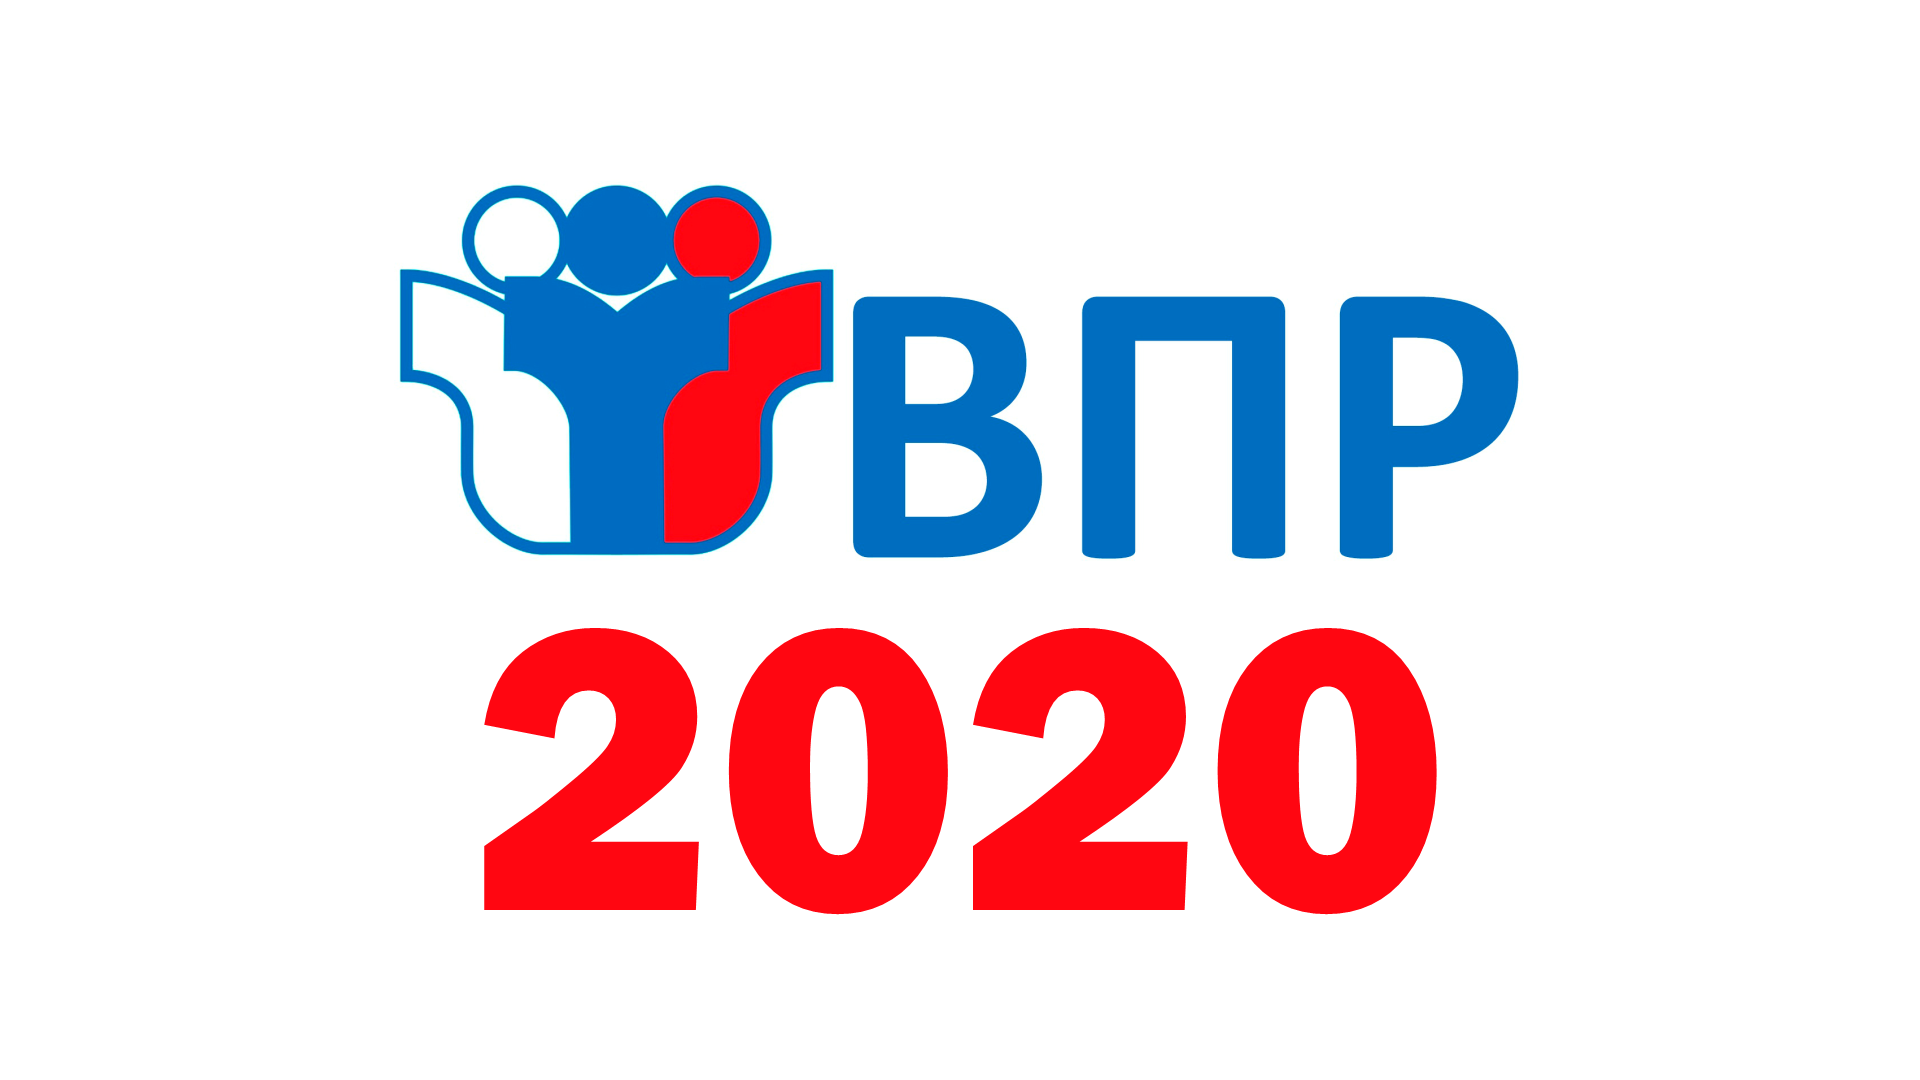 VPR-2020.png